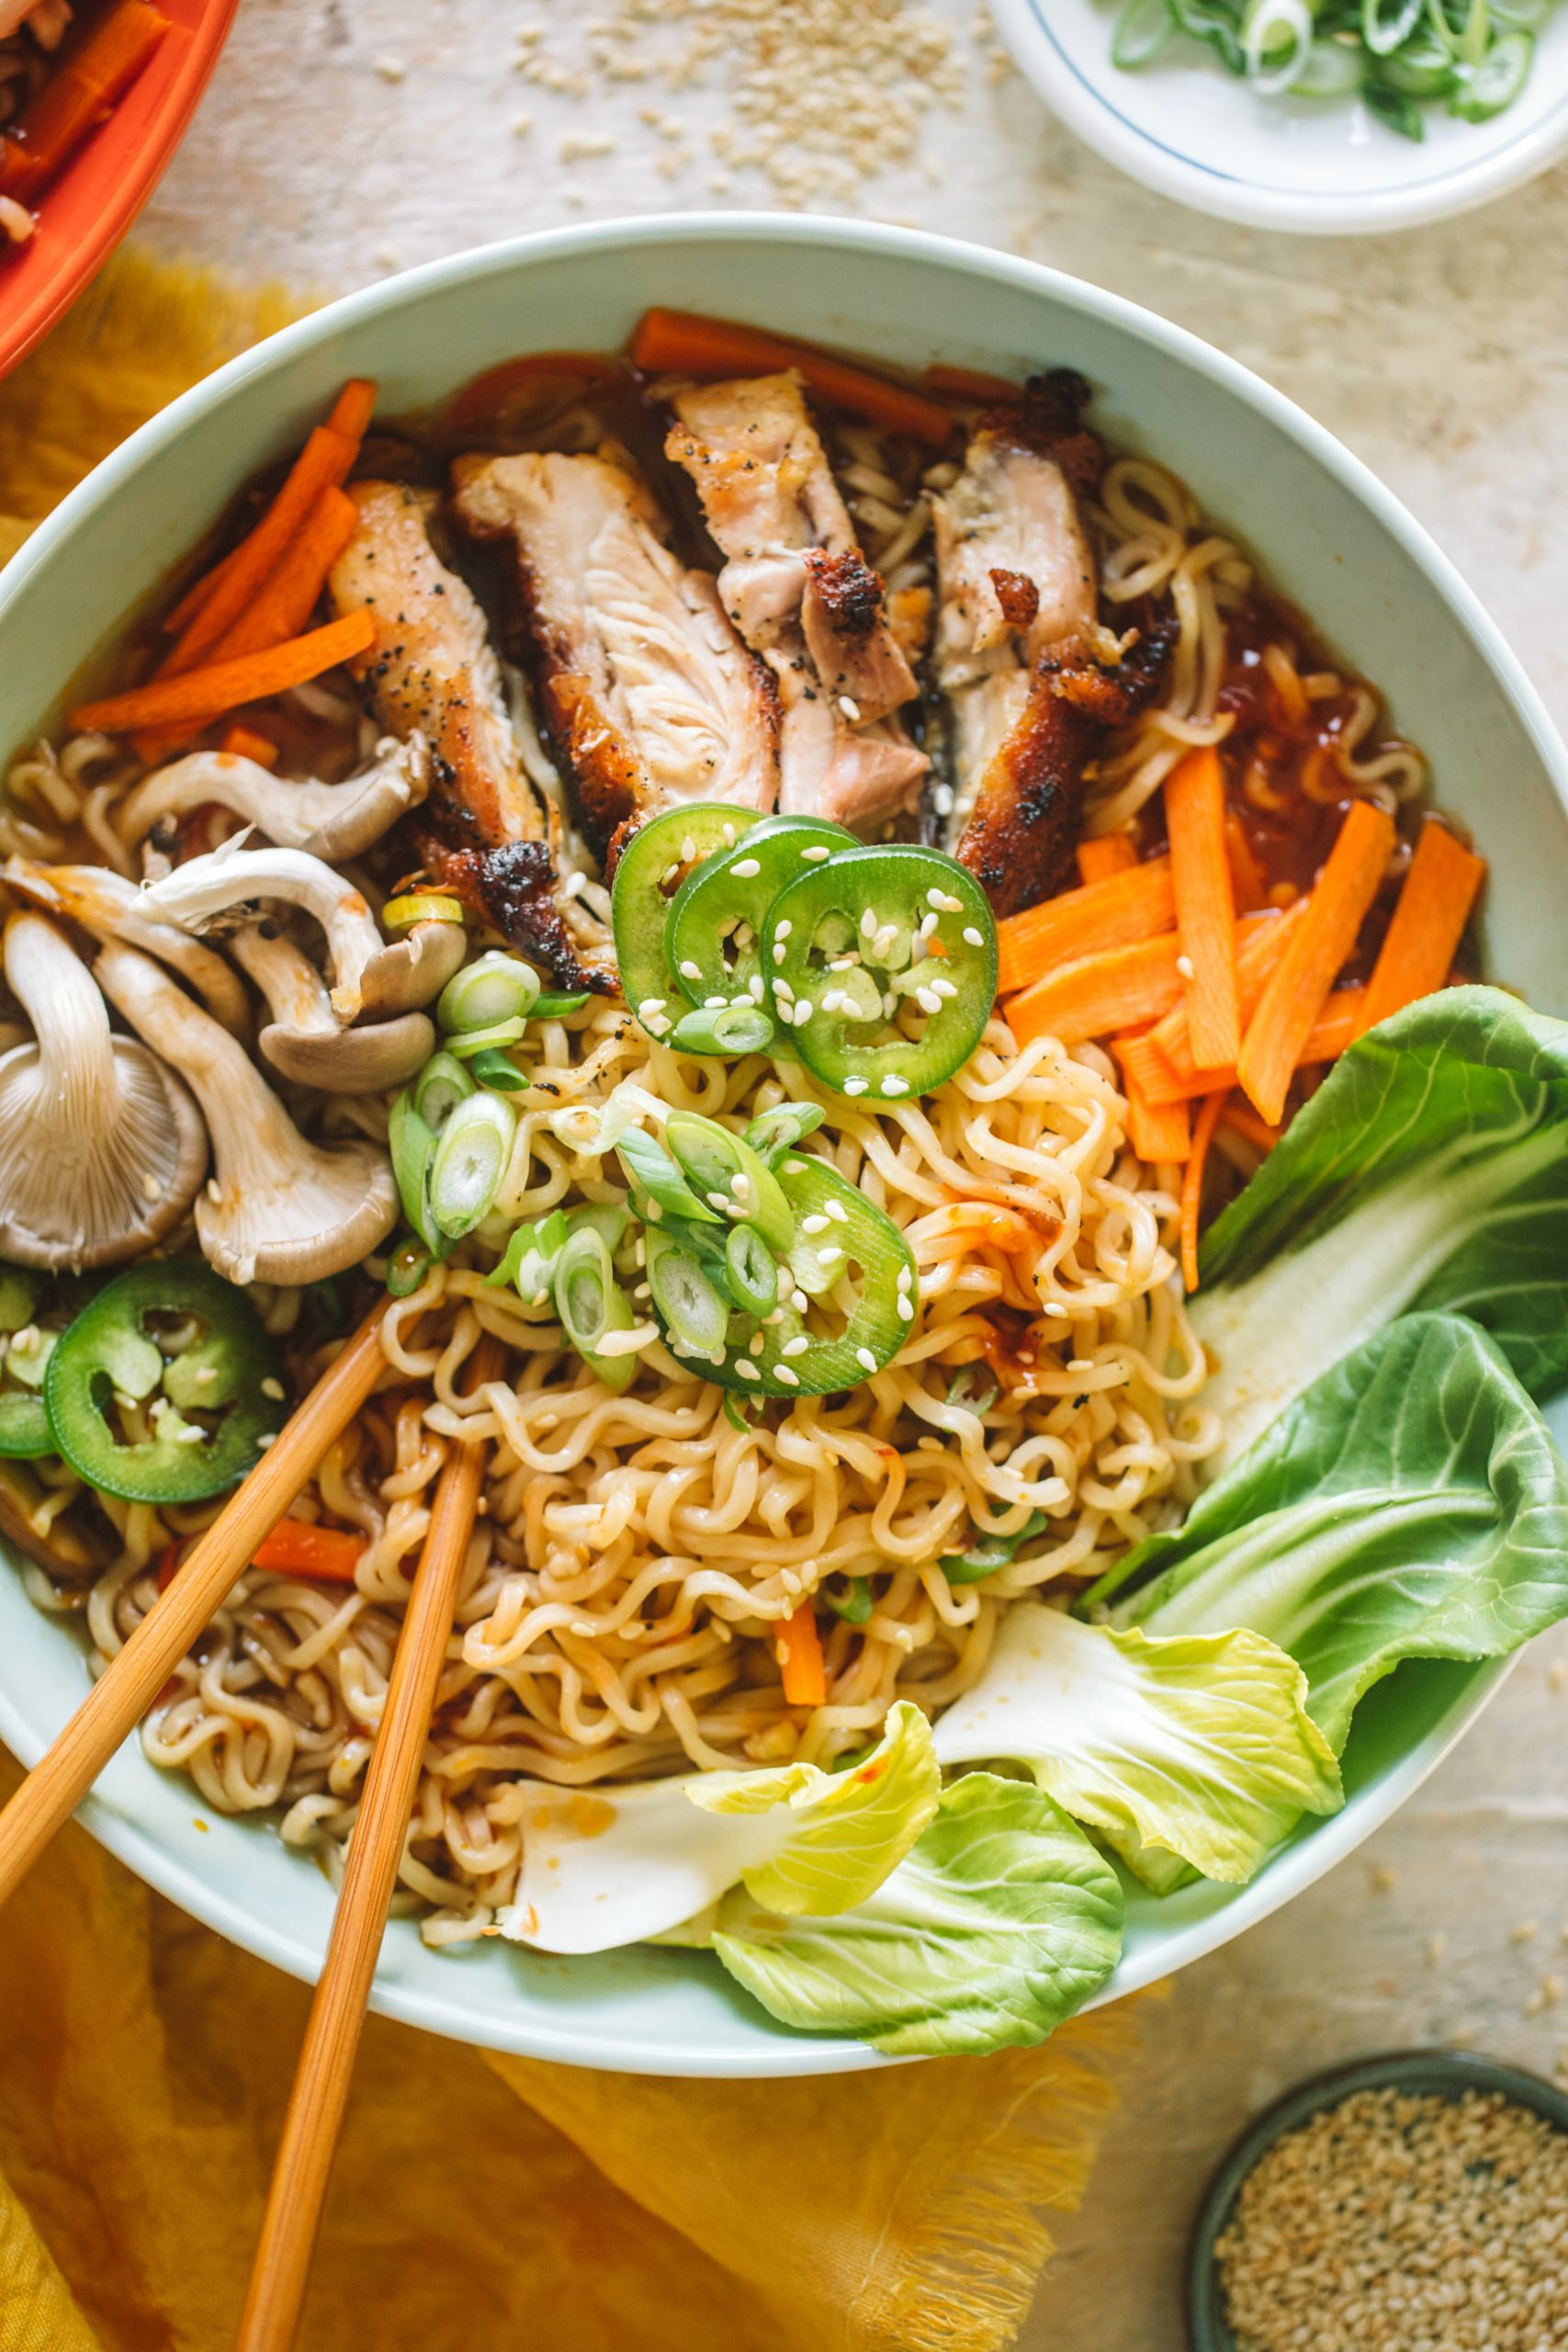 Spicy chicken ramen topped with jalapenos, mushrooms, bok choy, carrots and served in a blue bowl.